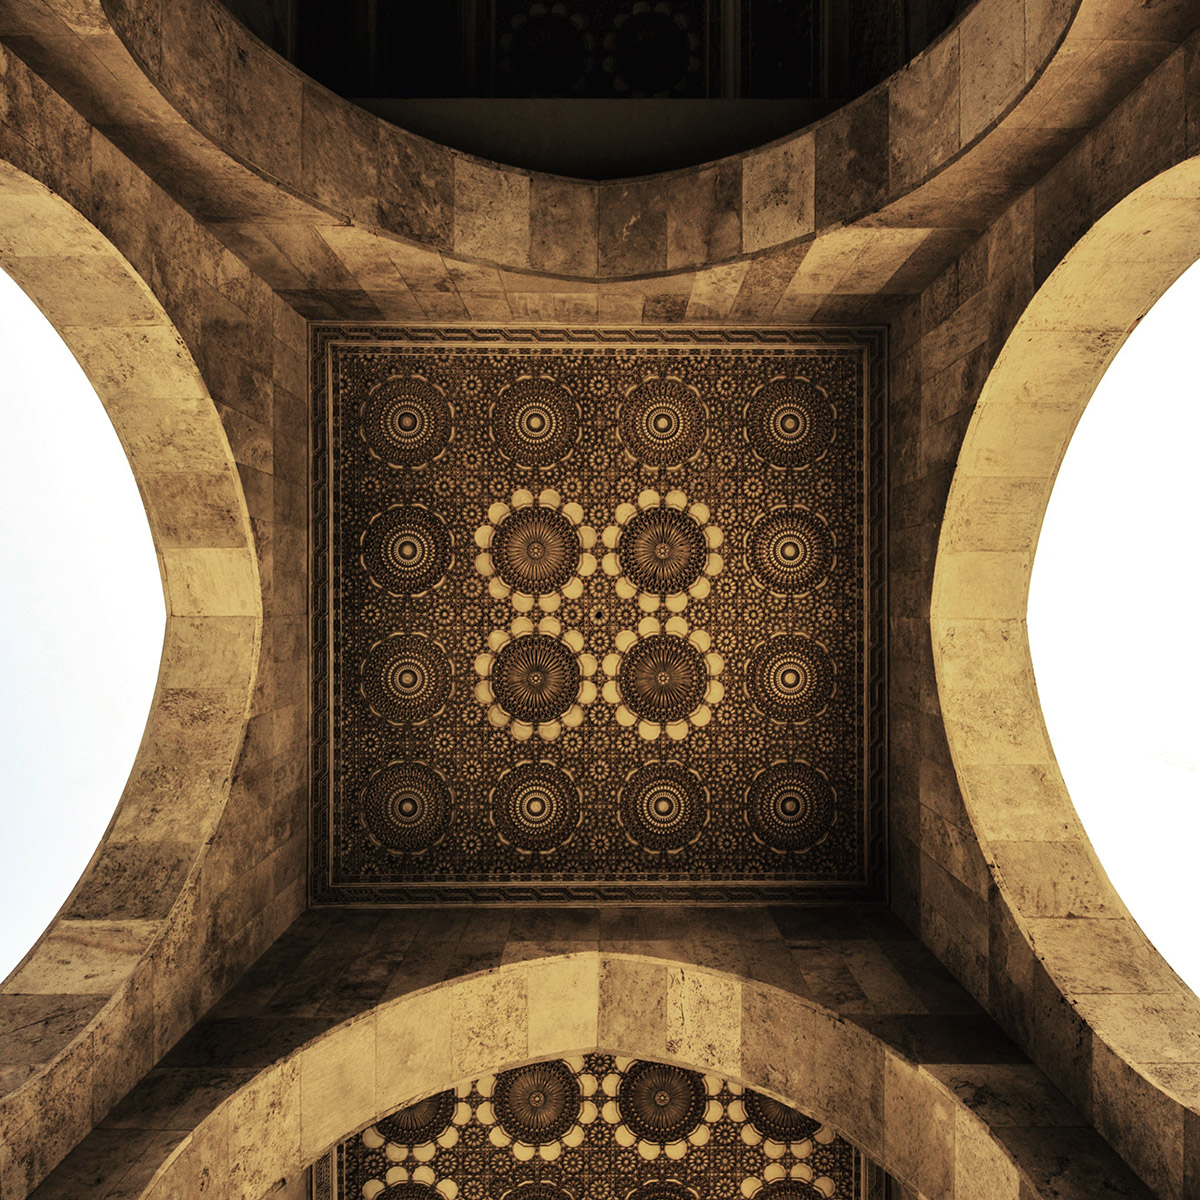 Roof detail of Hassan II Mosque in Casablanca